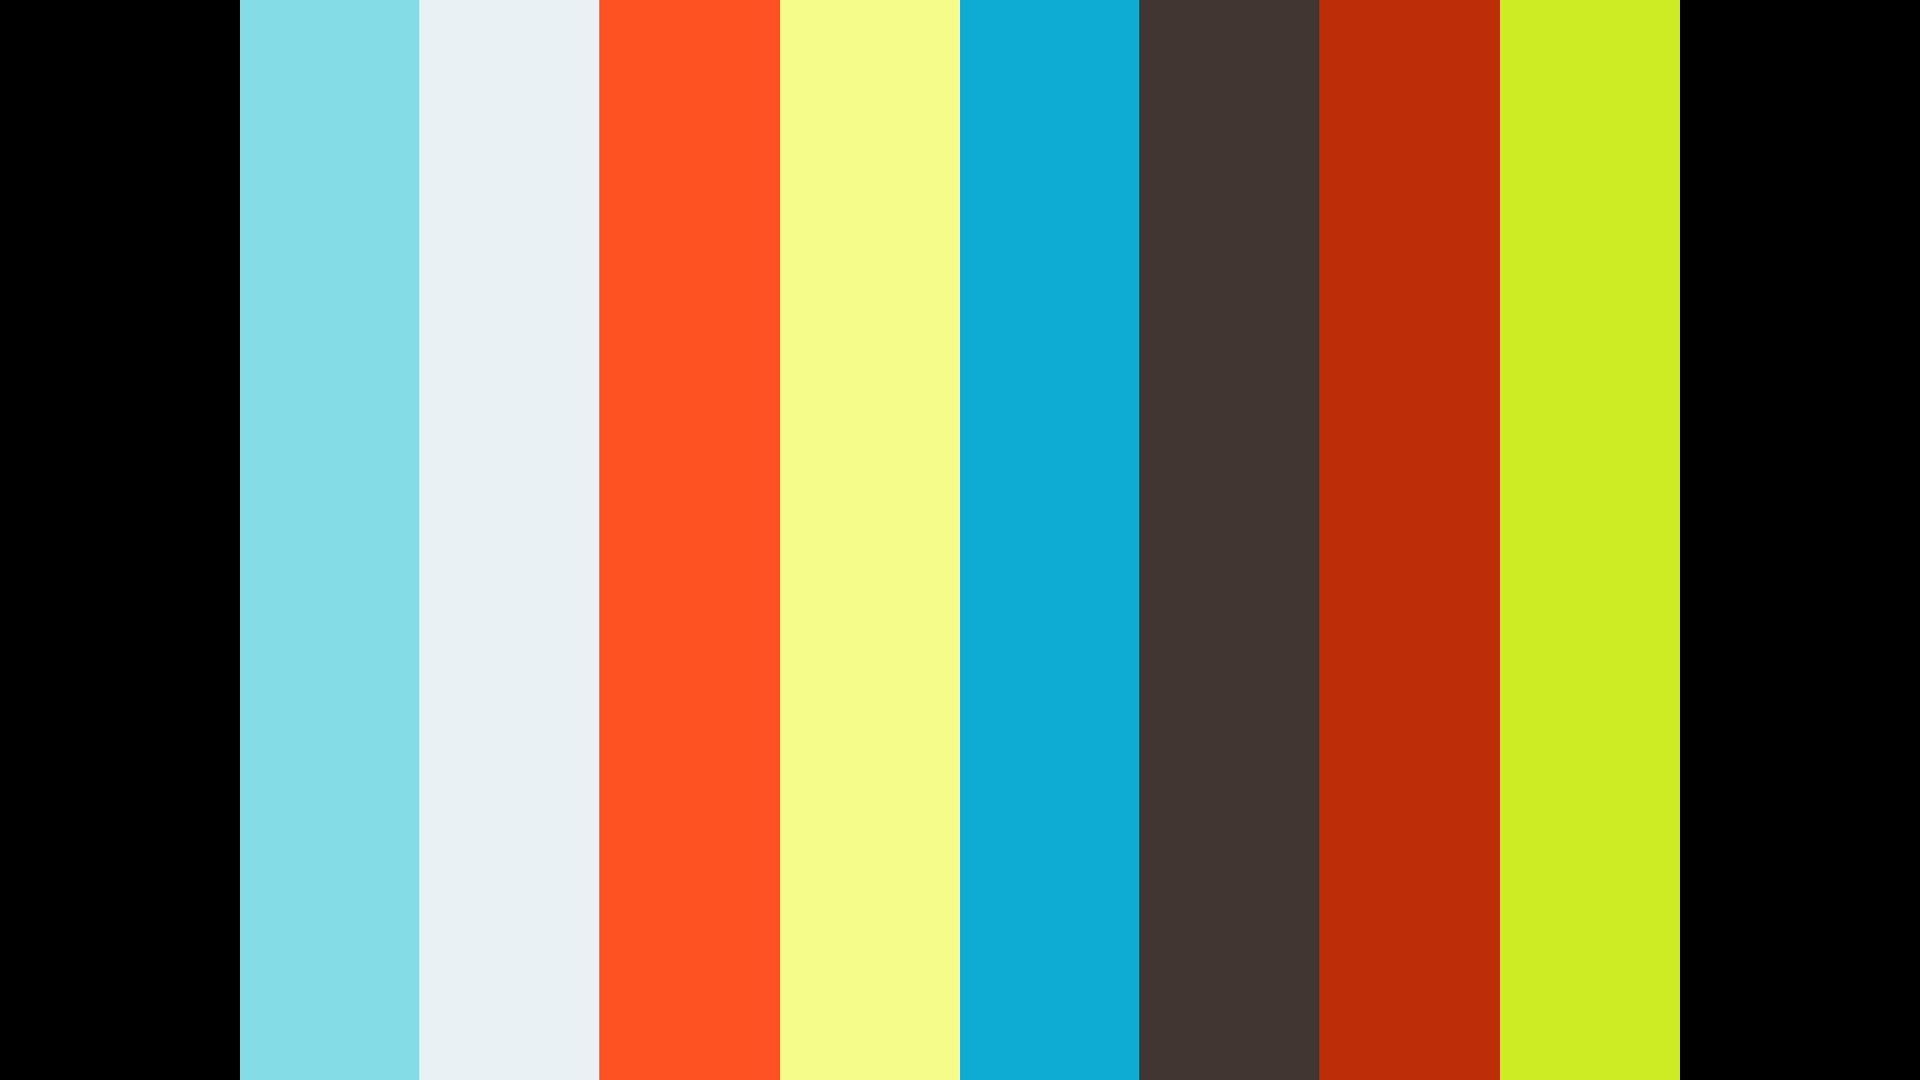 Real-time 3D display at SIGGRAPH 2014 with NVIDIA and 4N